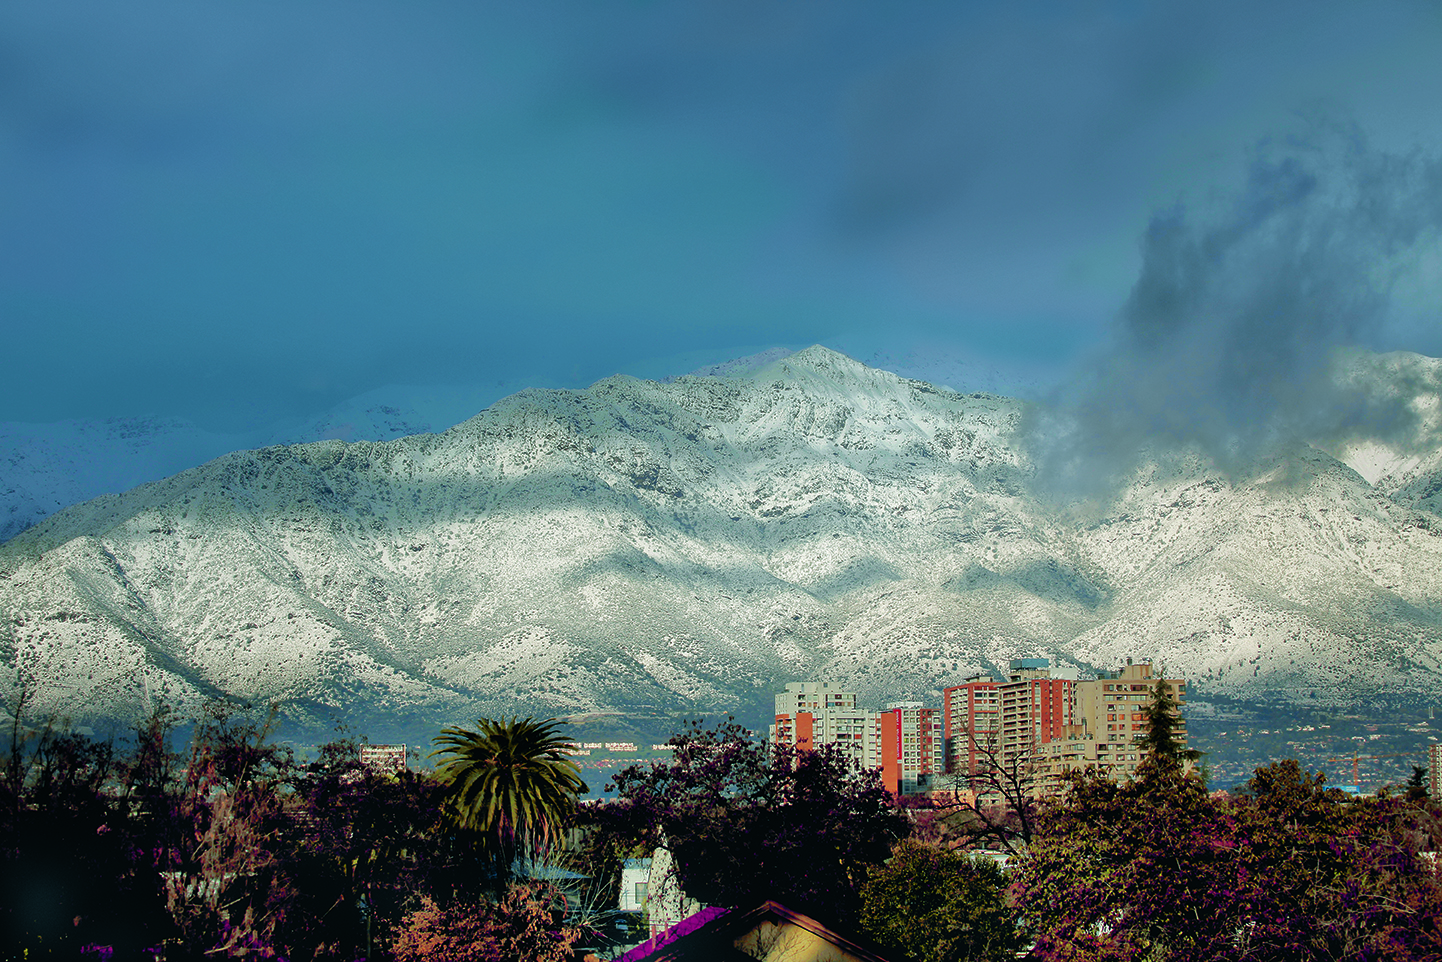 Santiago, Chile. Photo by Cristóbal Palma, from Boragó